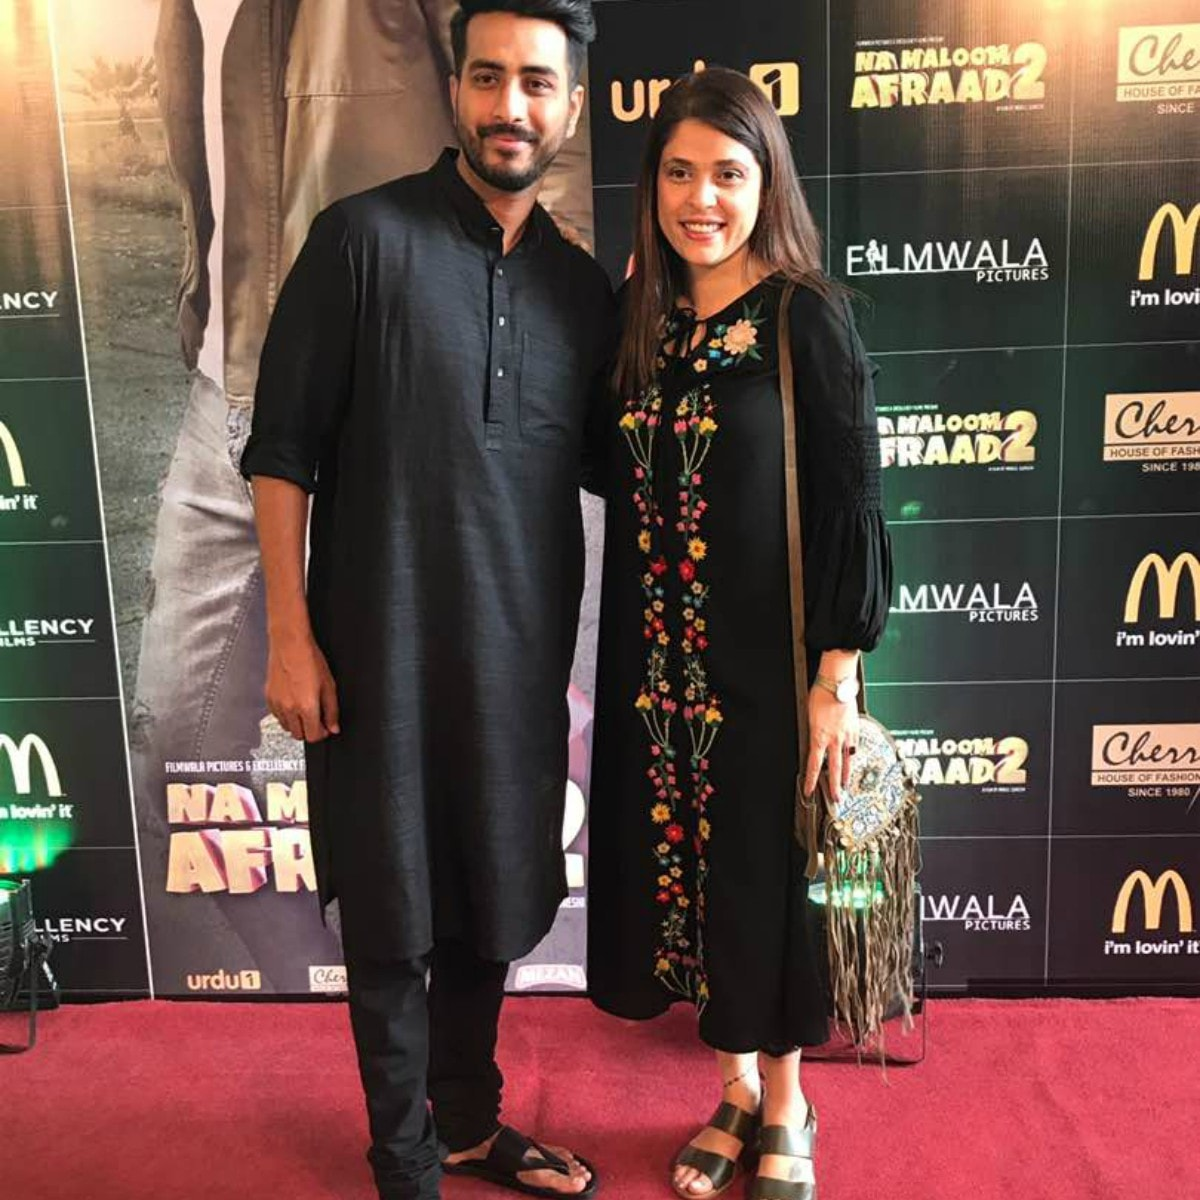 Director Nabeel Qureshi and producer Fizza Ali Meerza at the Na Maloom Afraad trailer launch in Karachi